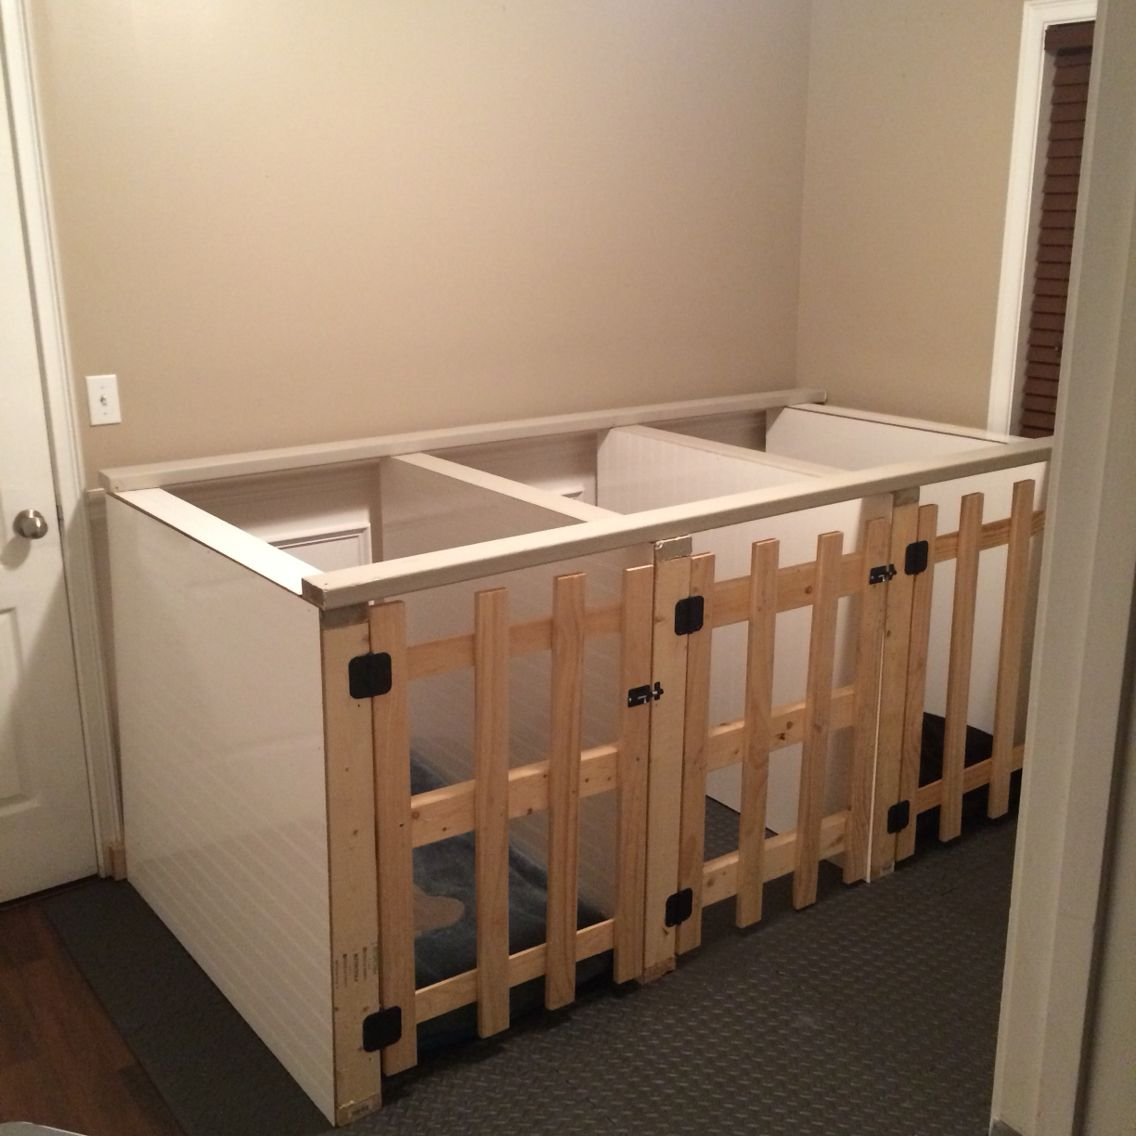 diy dog indoor kennels | pet love | pinterest | dogs, dog grooming